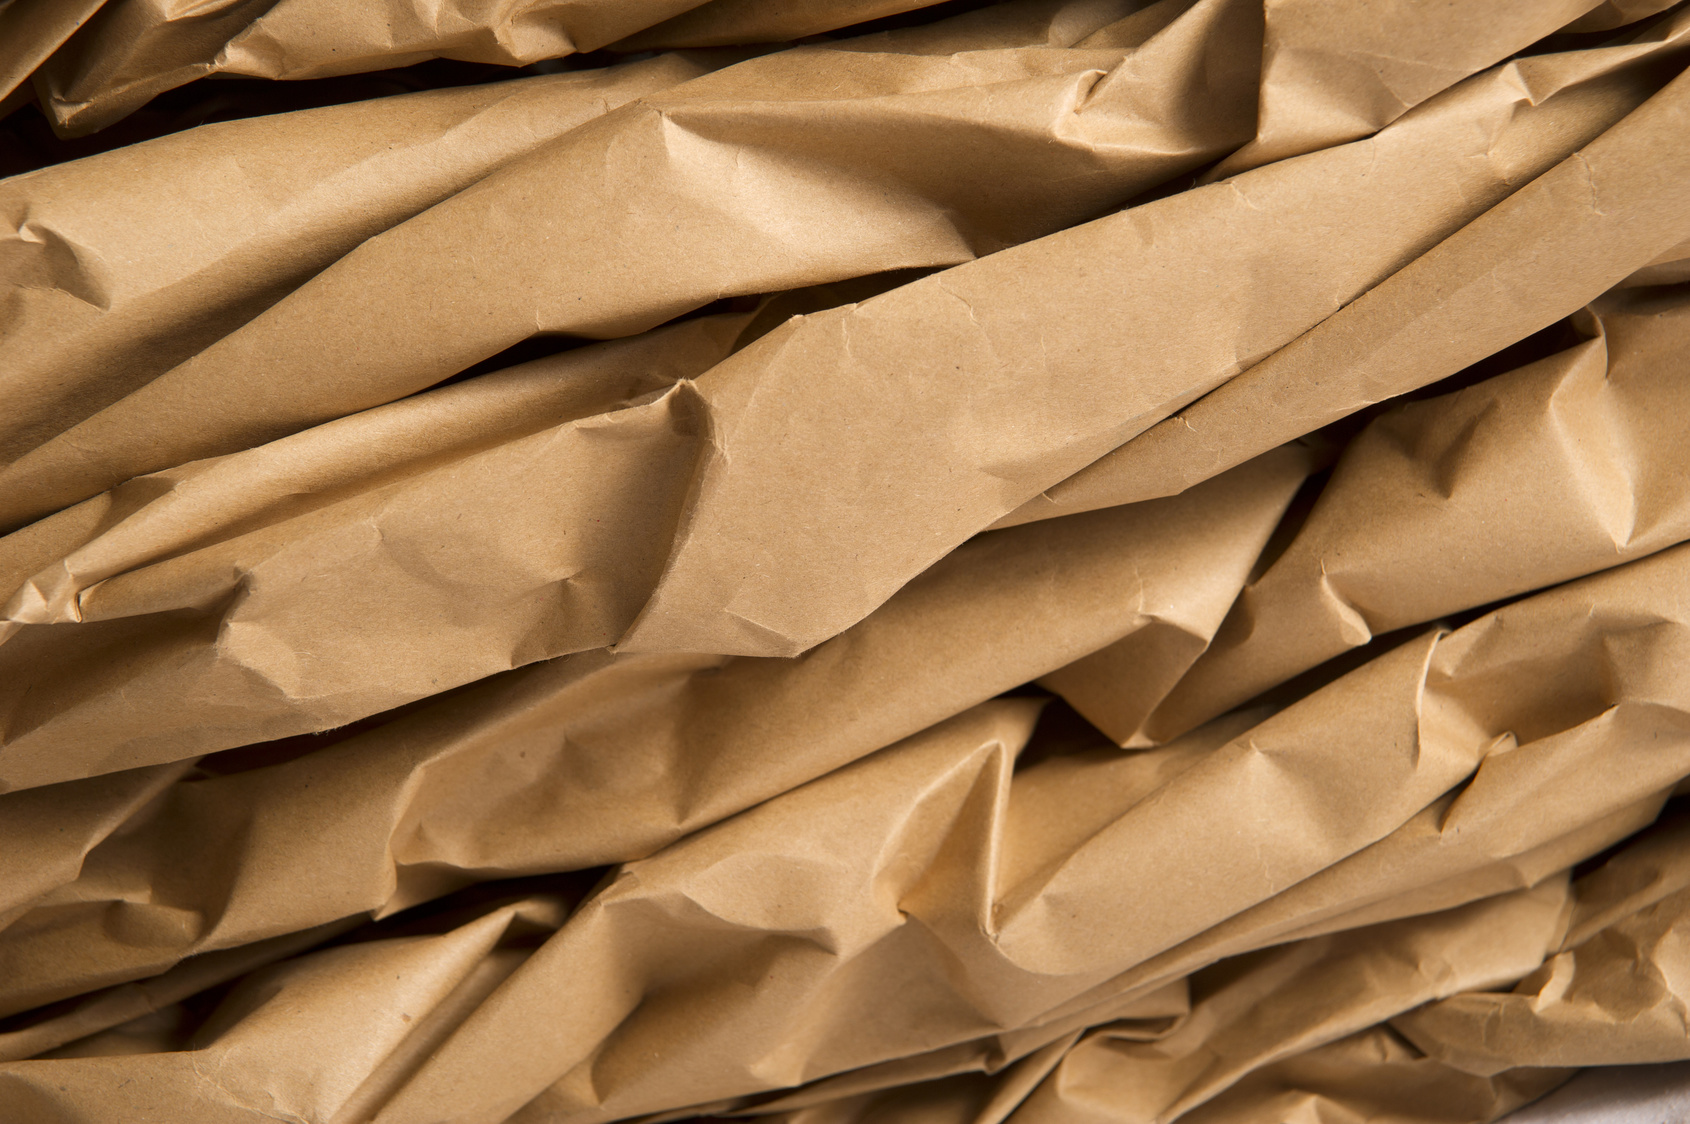 Natural brown kraft paper packaging sheets and rolls